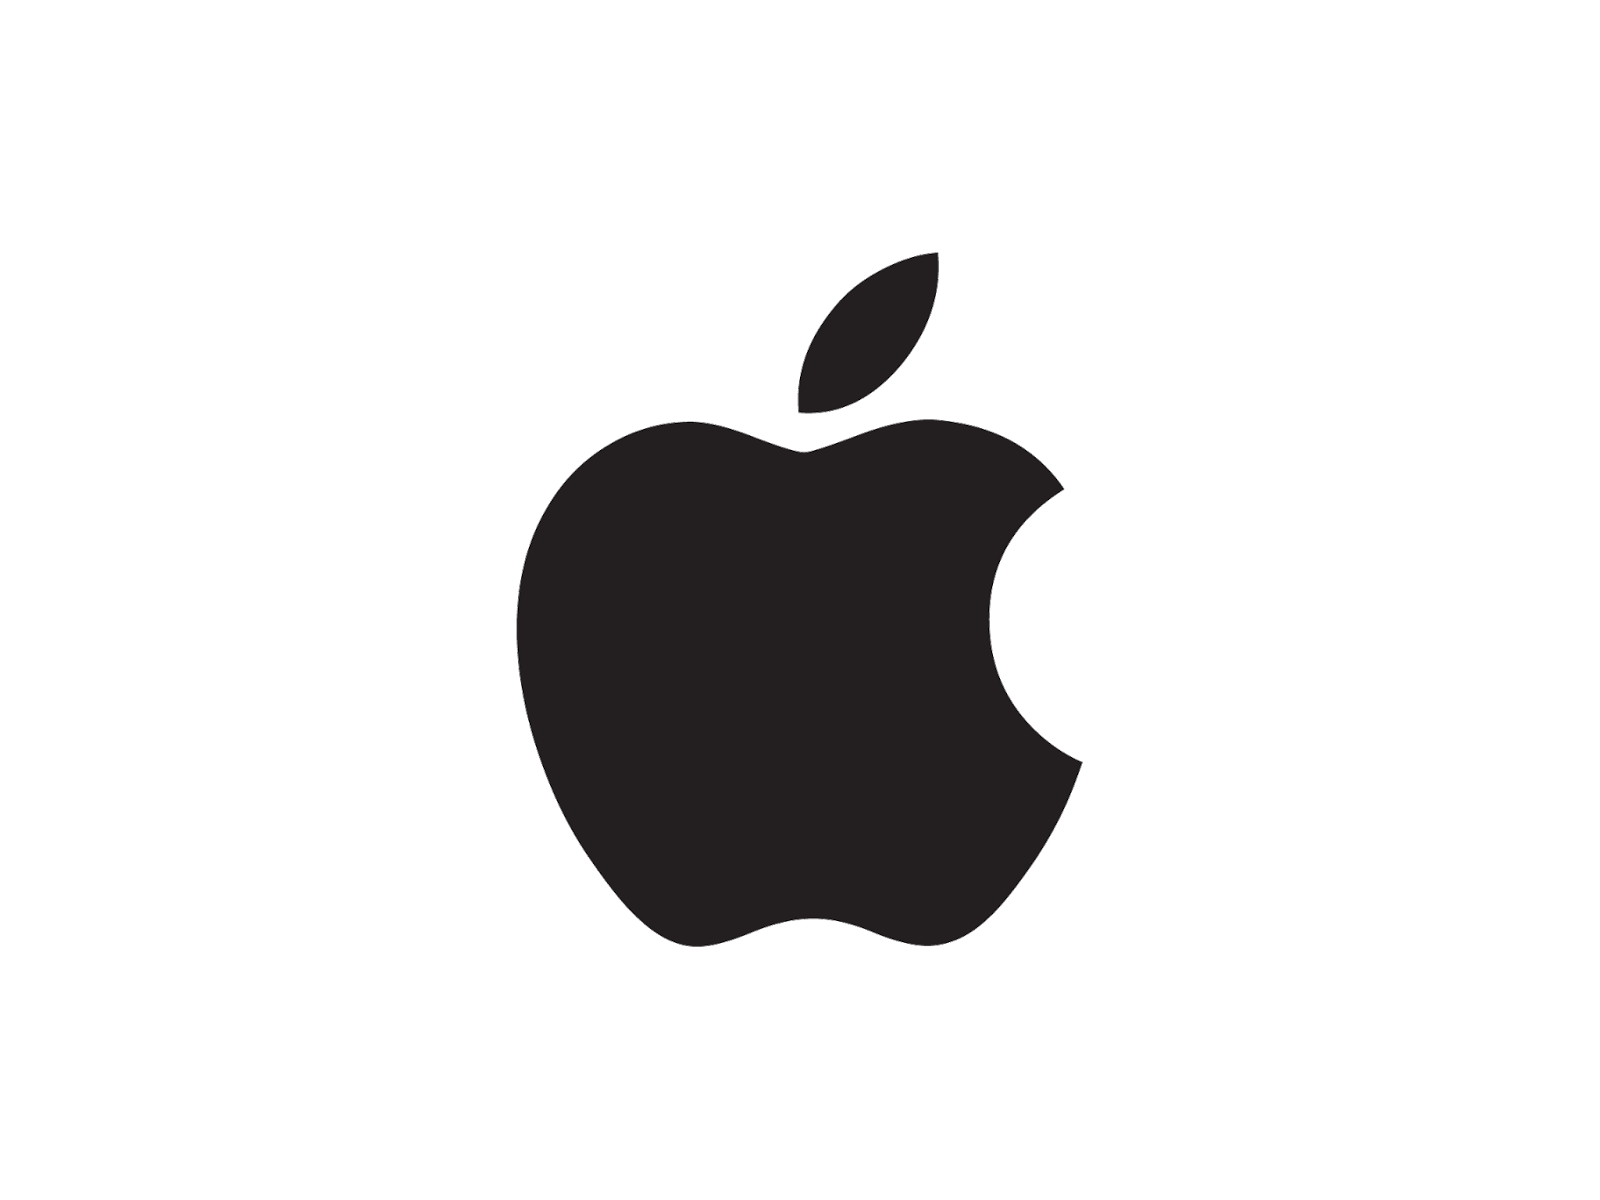 apple inc supply chain management